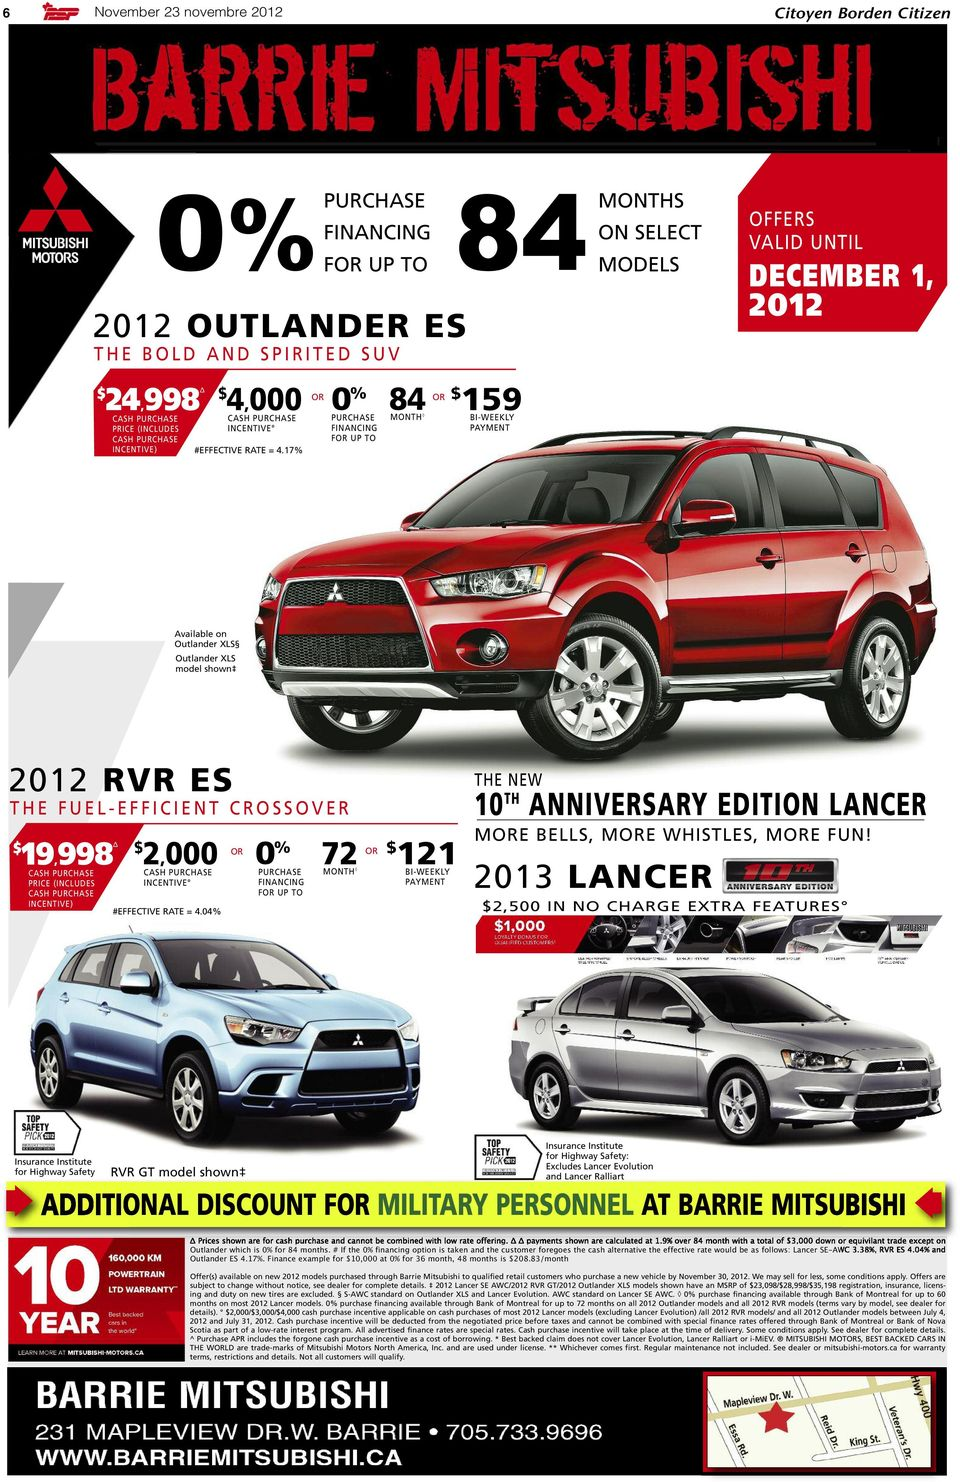 17% OR 0 % PURCHASE FINANCING FOR UP TO 84MONTHS ON SELECT MODELS OR 84 $ 159 MONTH BI-WEEKLY PAYMENT OFFERS VALID UNTIL DECEMBER 1, 2012 Available on Outlander XLS Outlander XLS model shown 2012 RVR